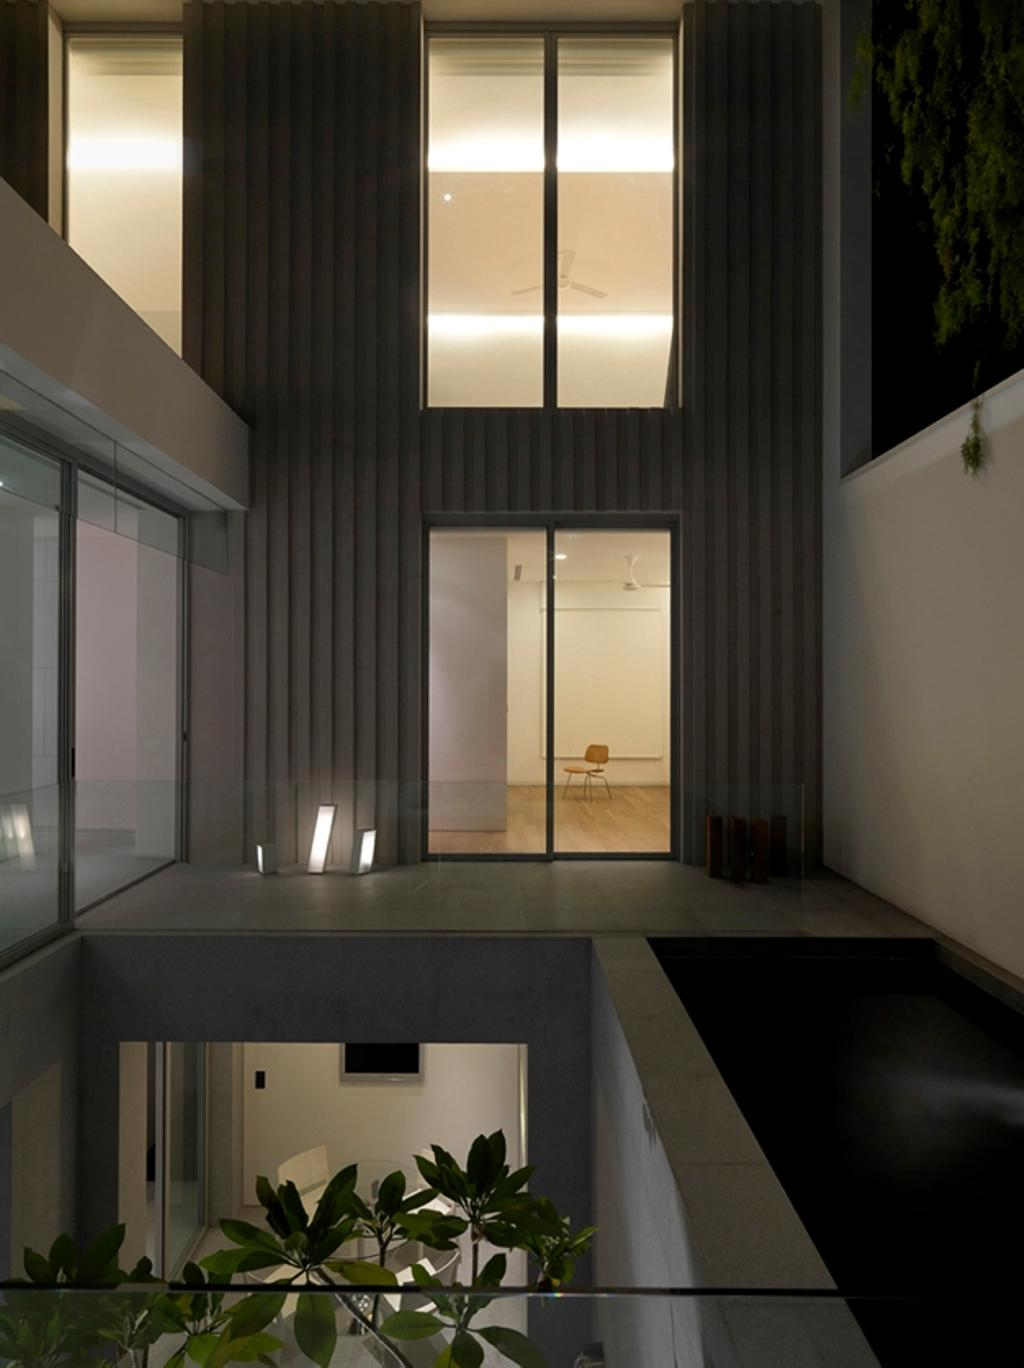 Modern, Landed, Ontario, Architect, Ministry of Design, Glass Barricade, Glass Walls, Wall